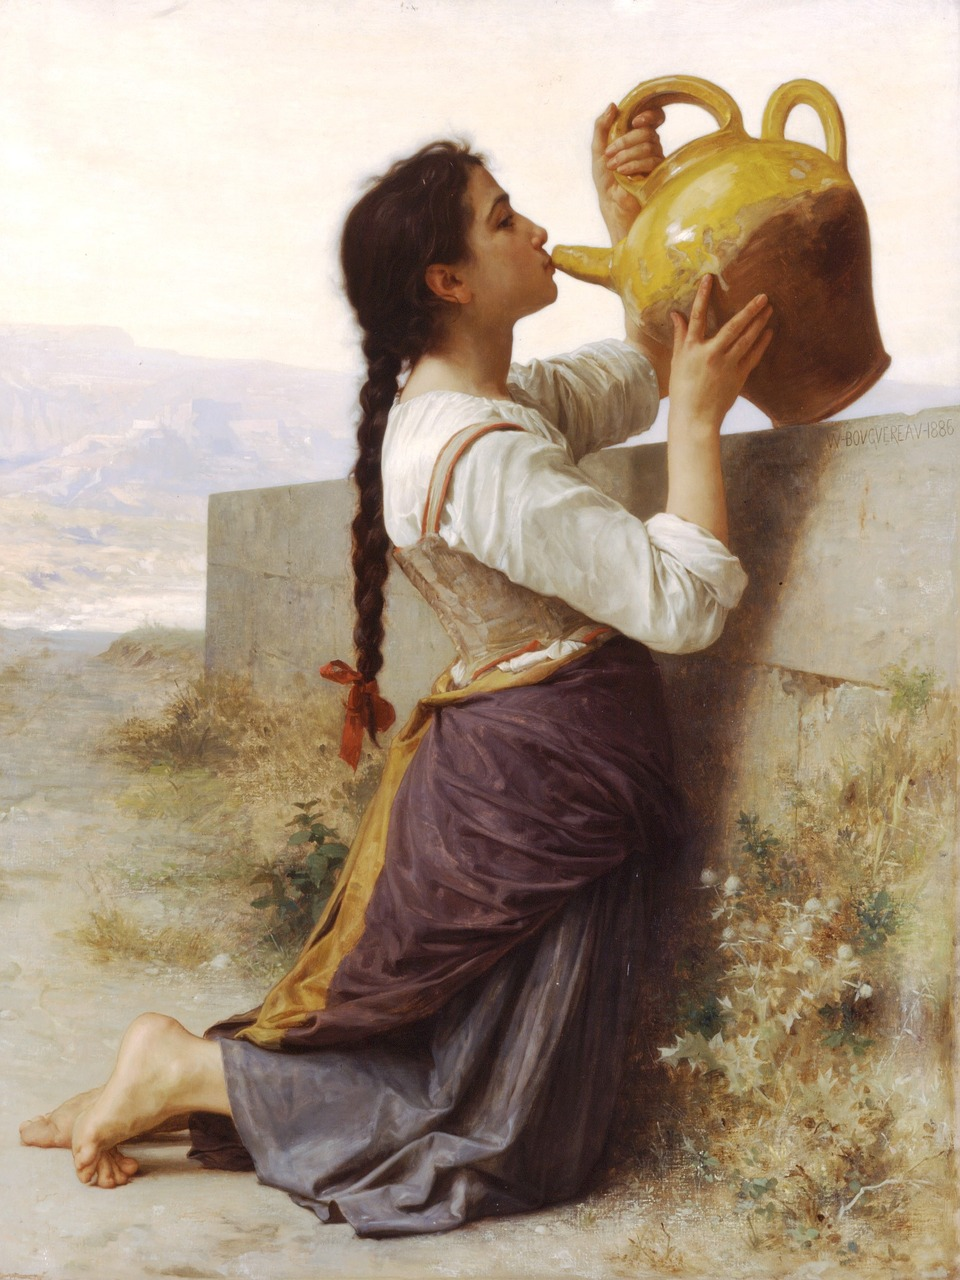 The Thirst for More Faith